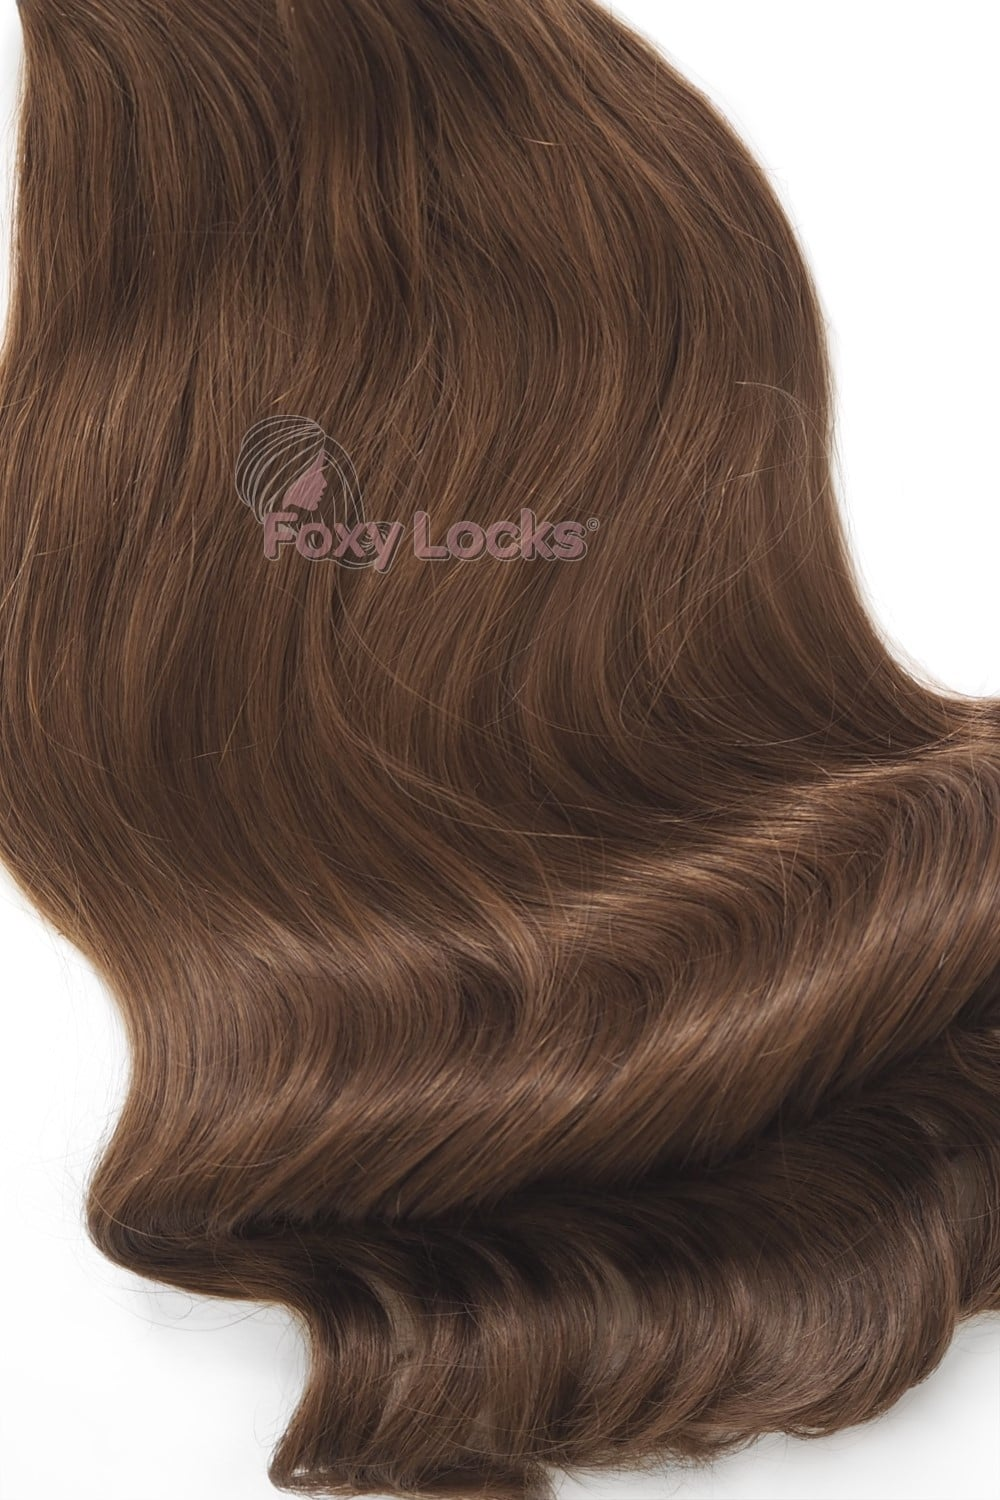 Chestnut Brown 6 Deluxe 20 Clip In Human Hair Extensions 165g